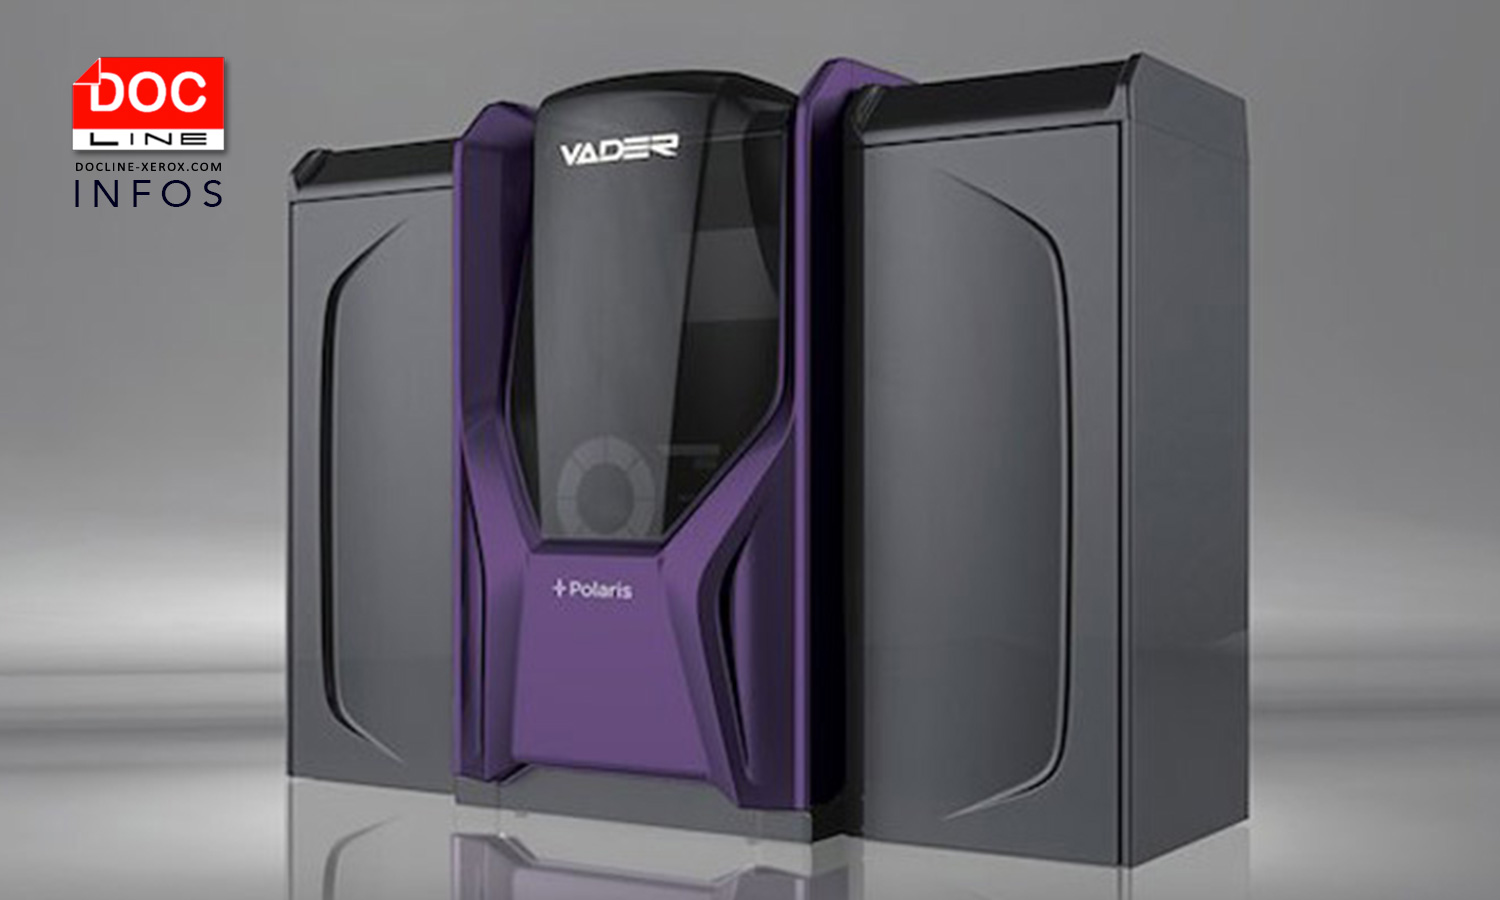 xerox-vader systems-3d-docline